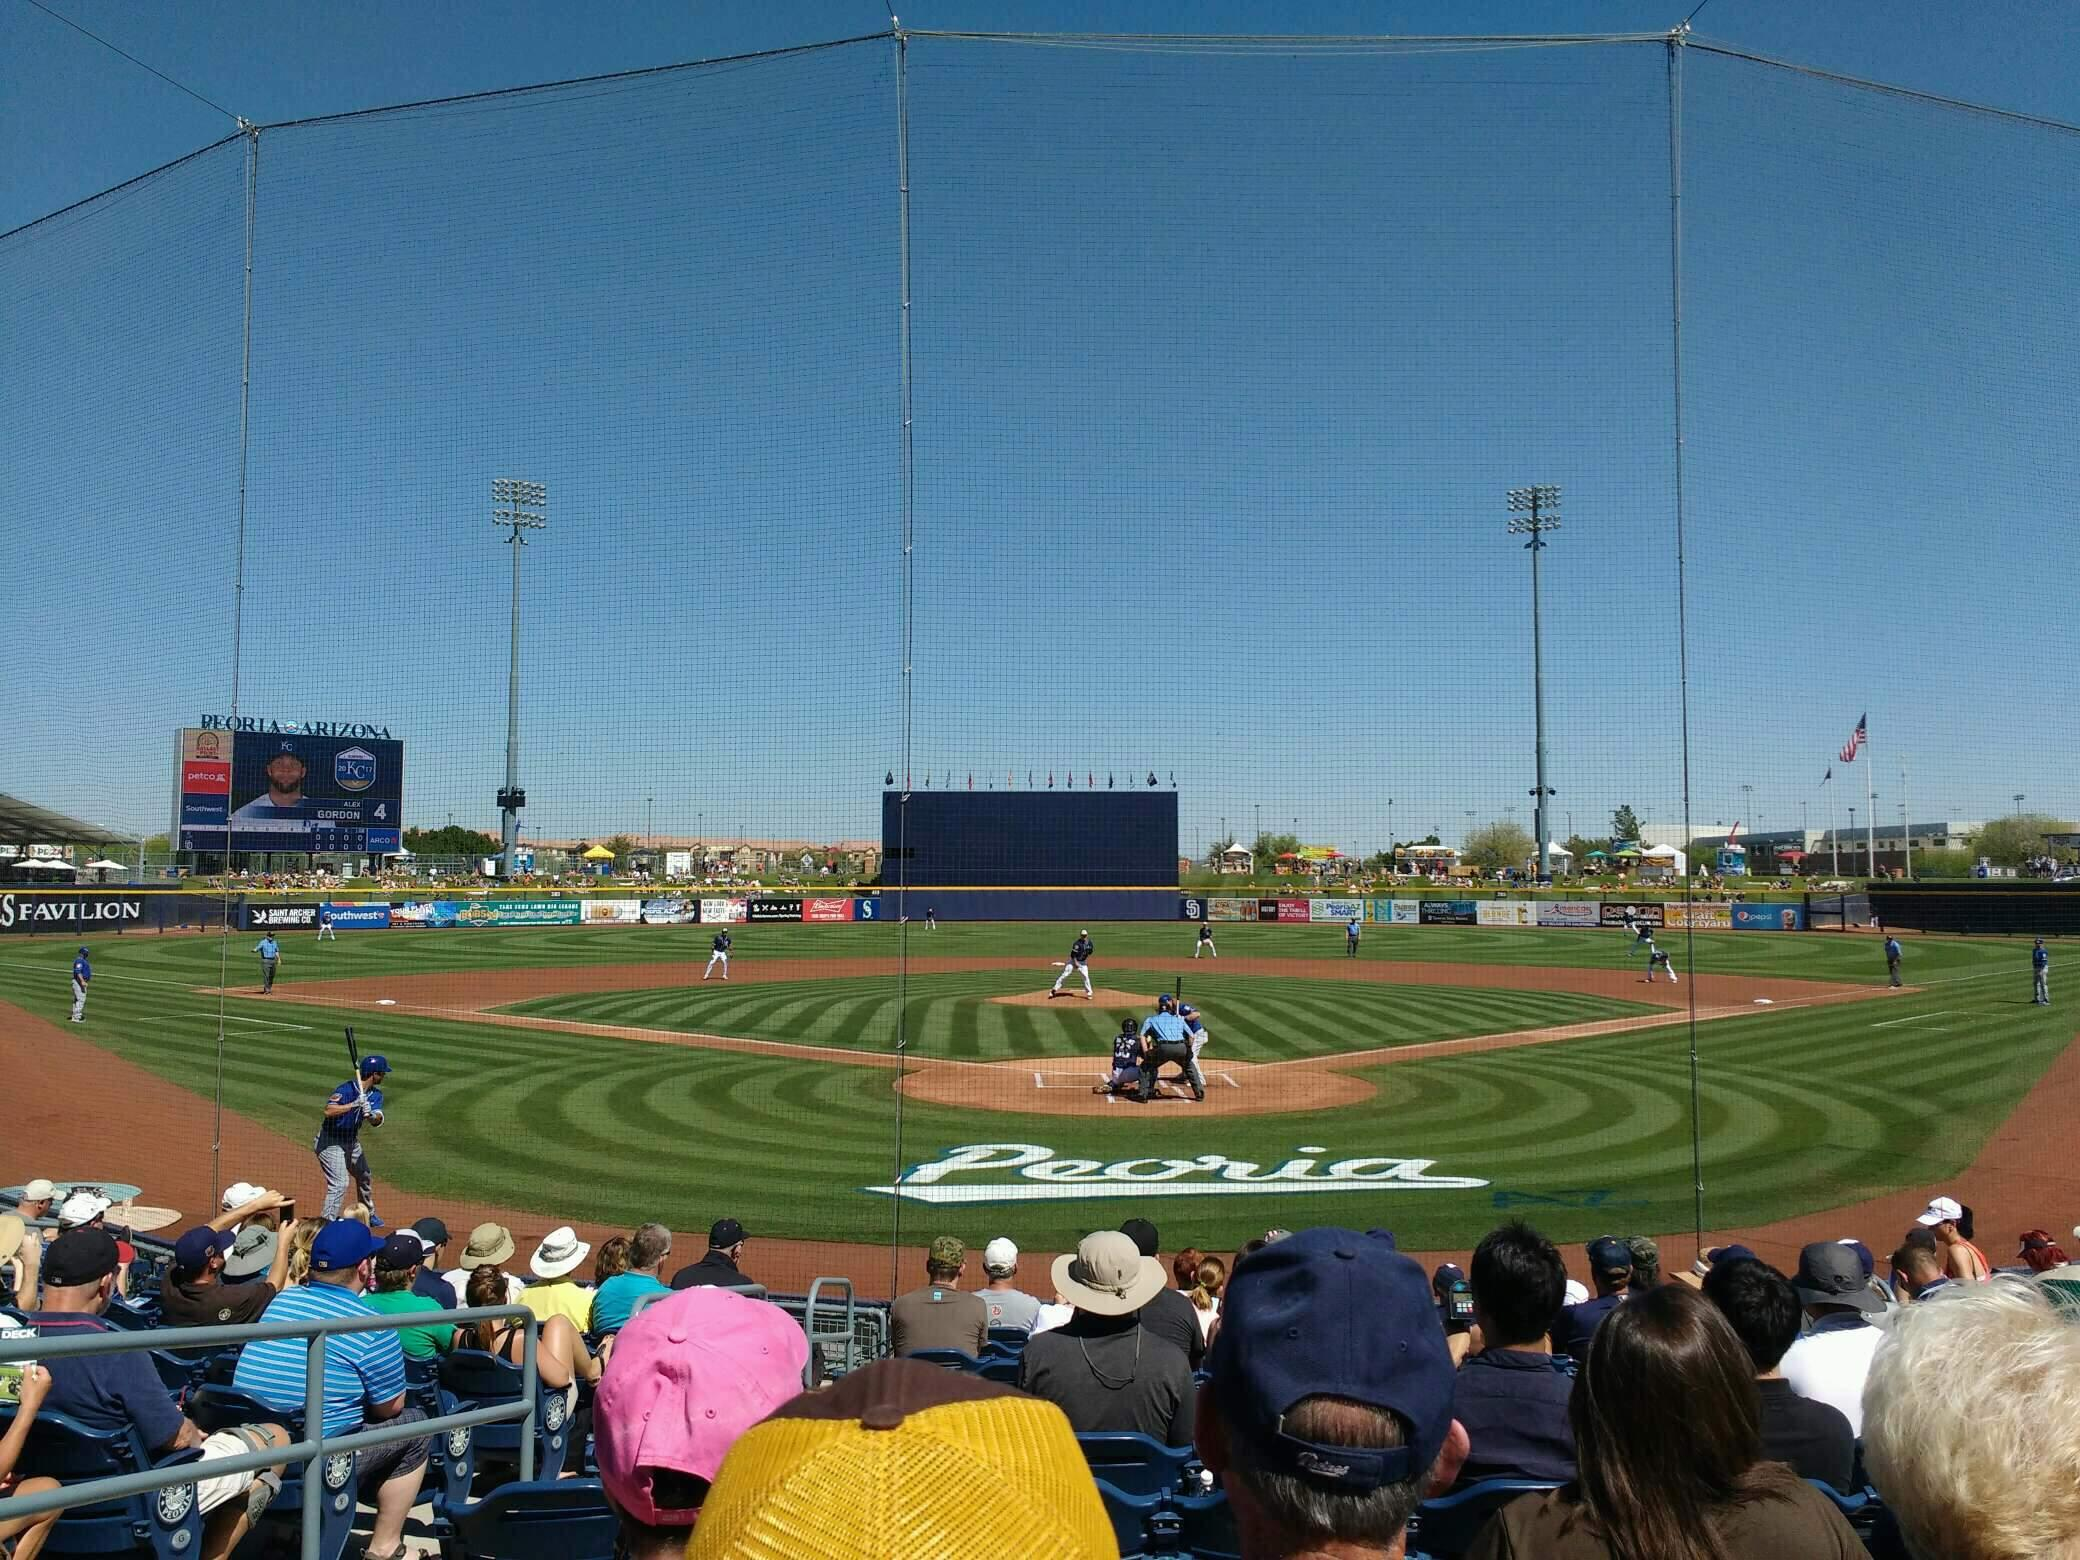 Peoria Sports Complex Section 100 Row n Seat 11